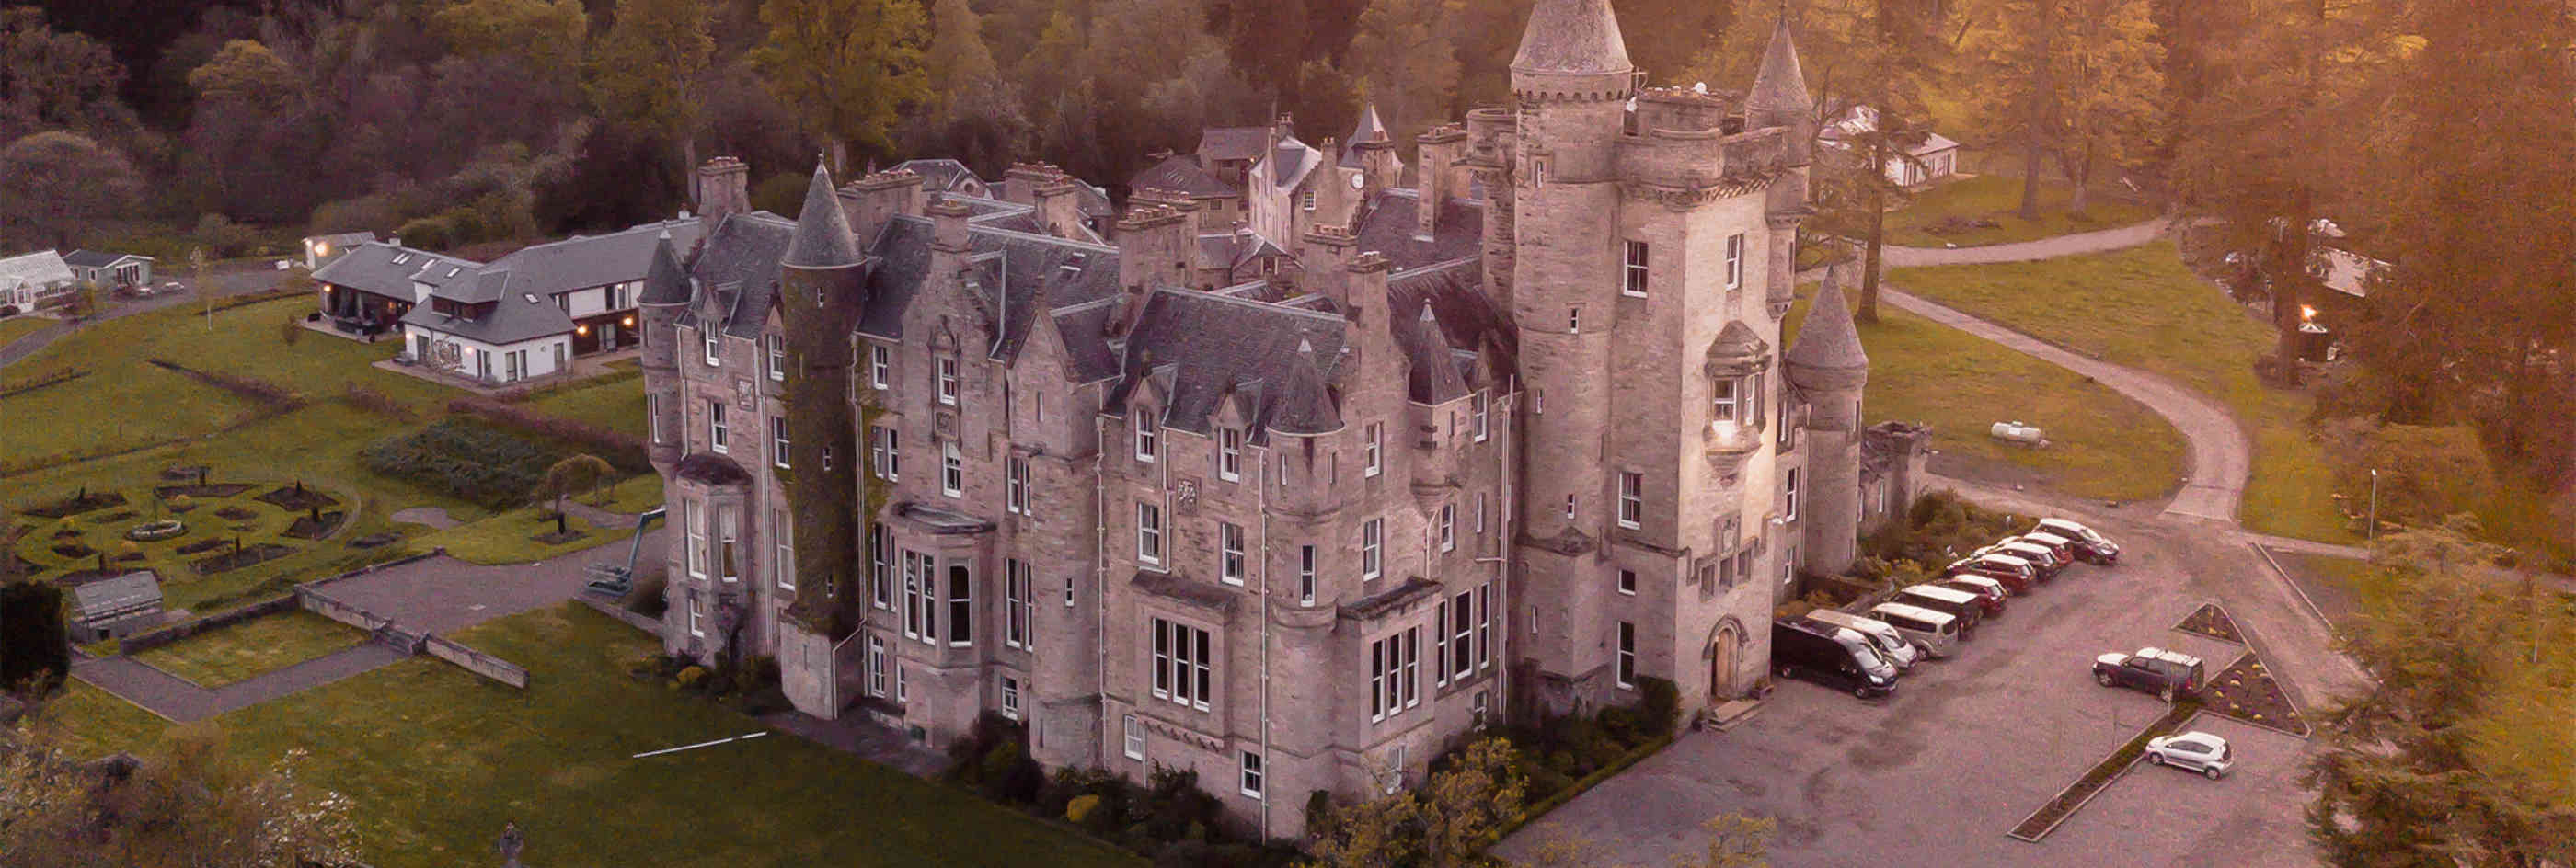 Blairdrummond Castle 2000X700